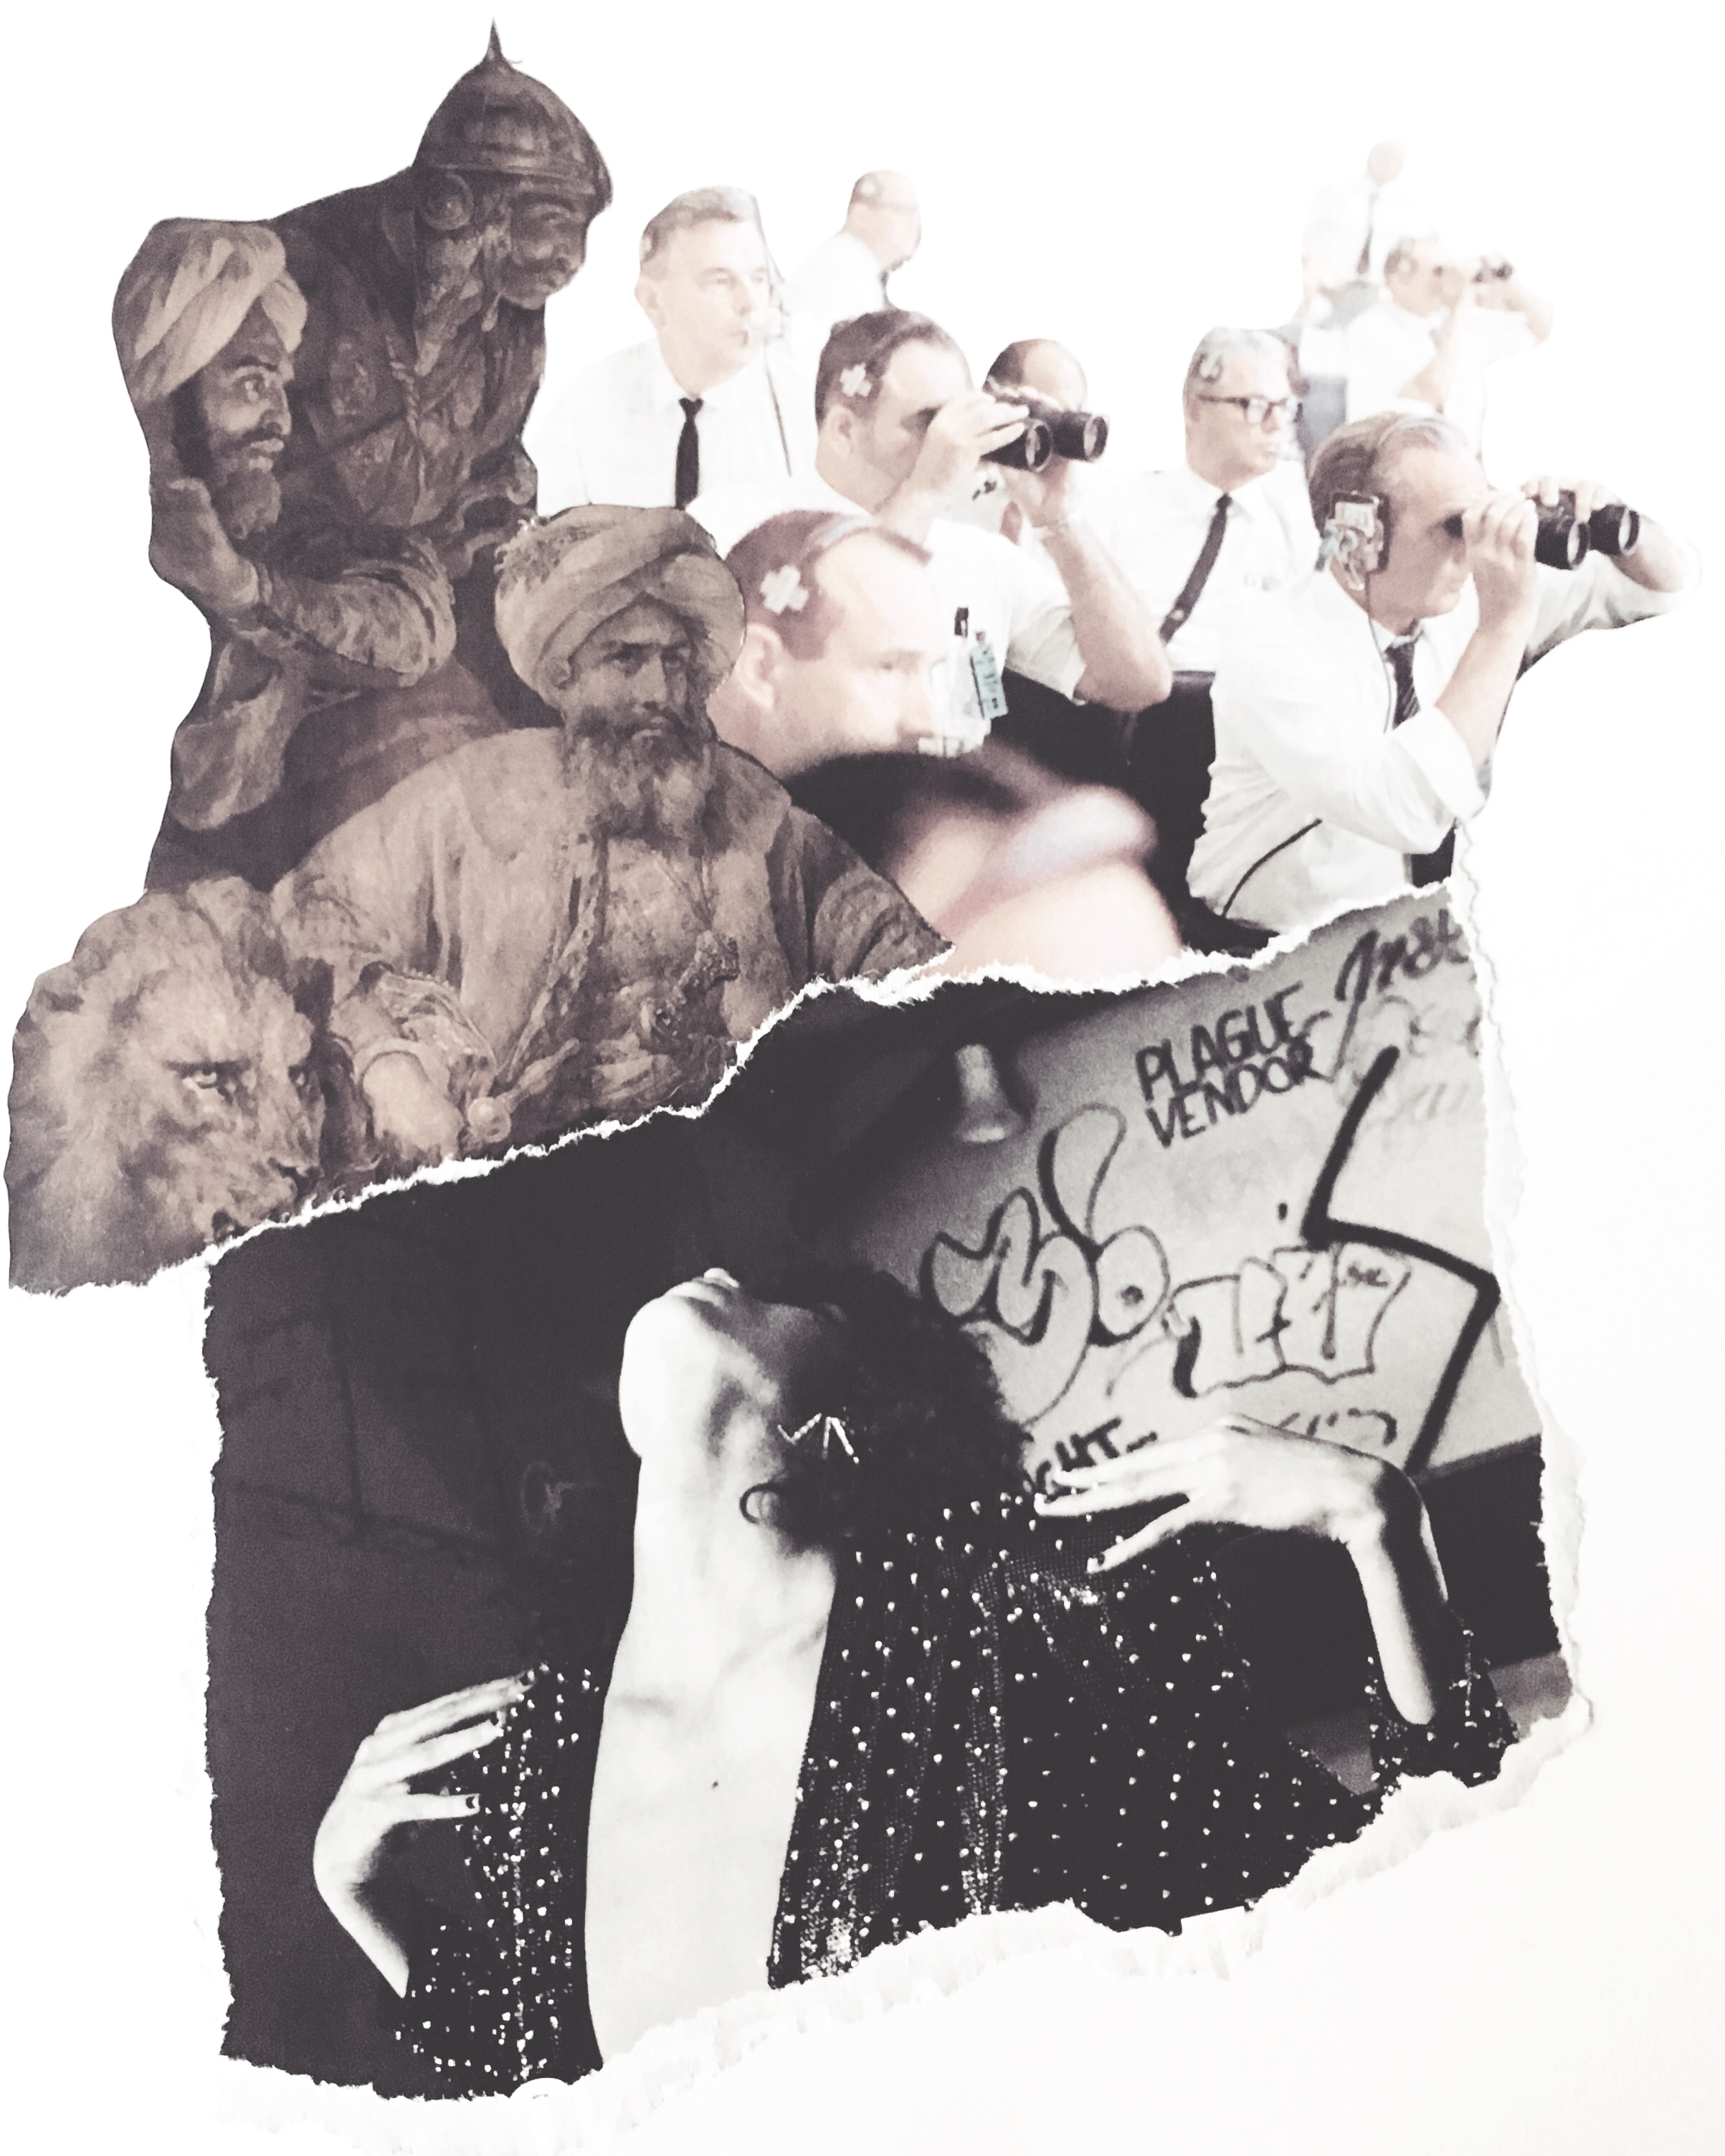 Collage by Sara Galactica